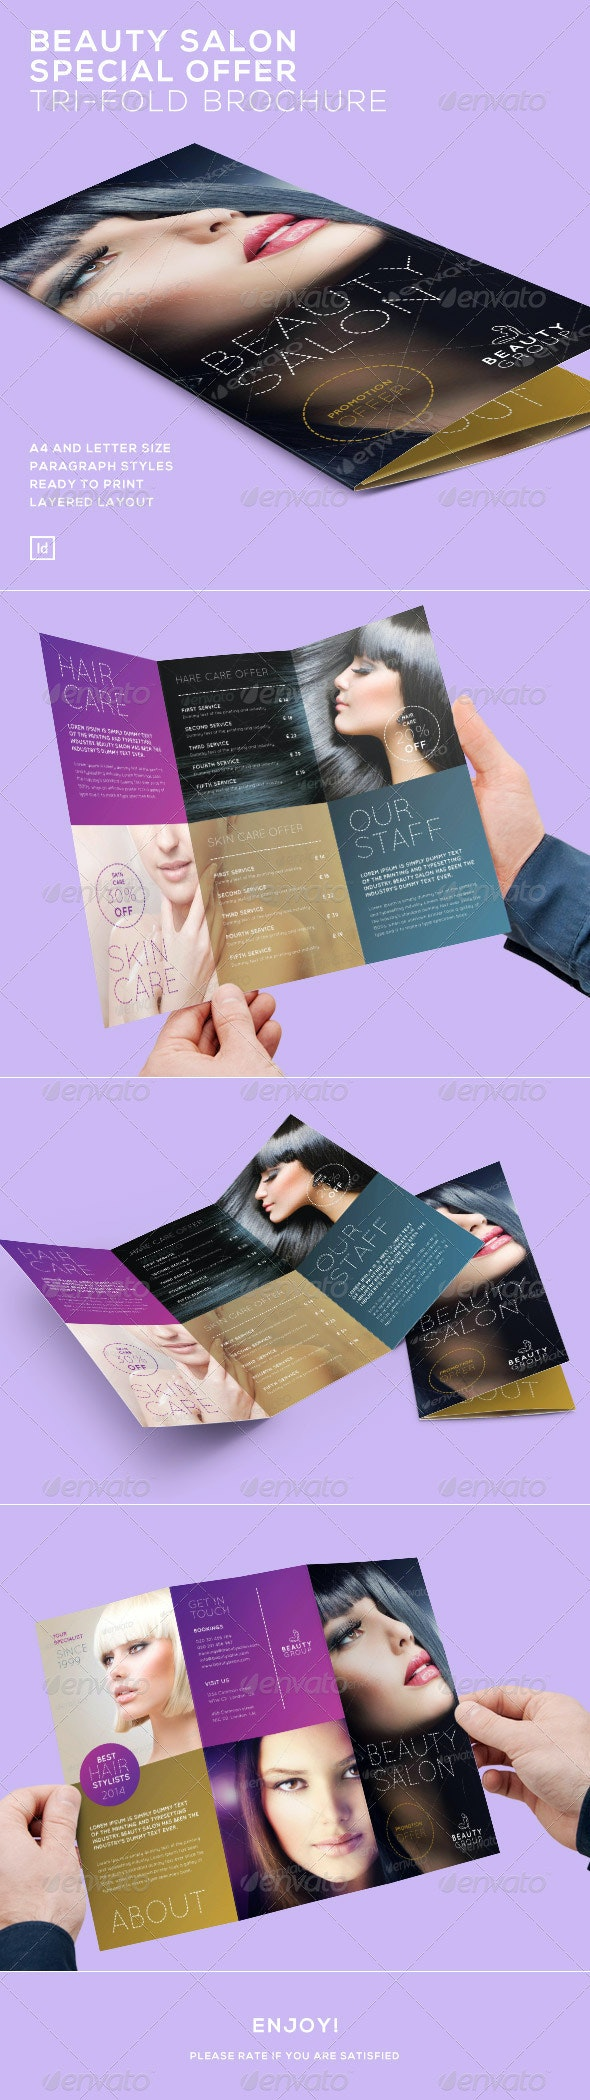 Beauty Salon Special Offer - Tri-Fold Brochure - Brochures Print Templates